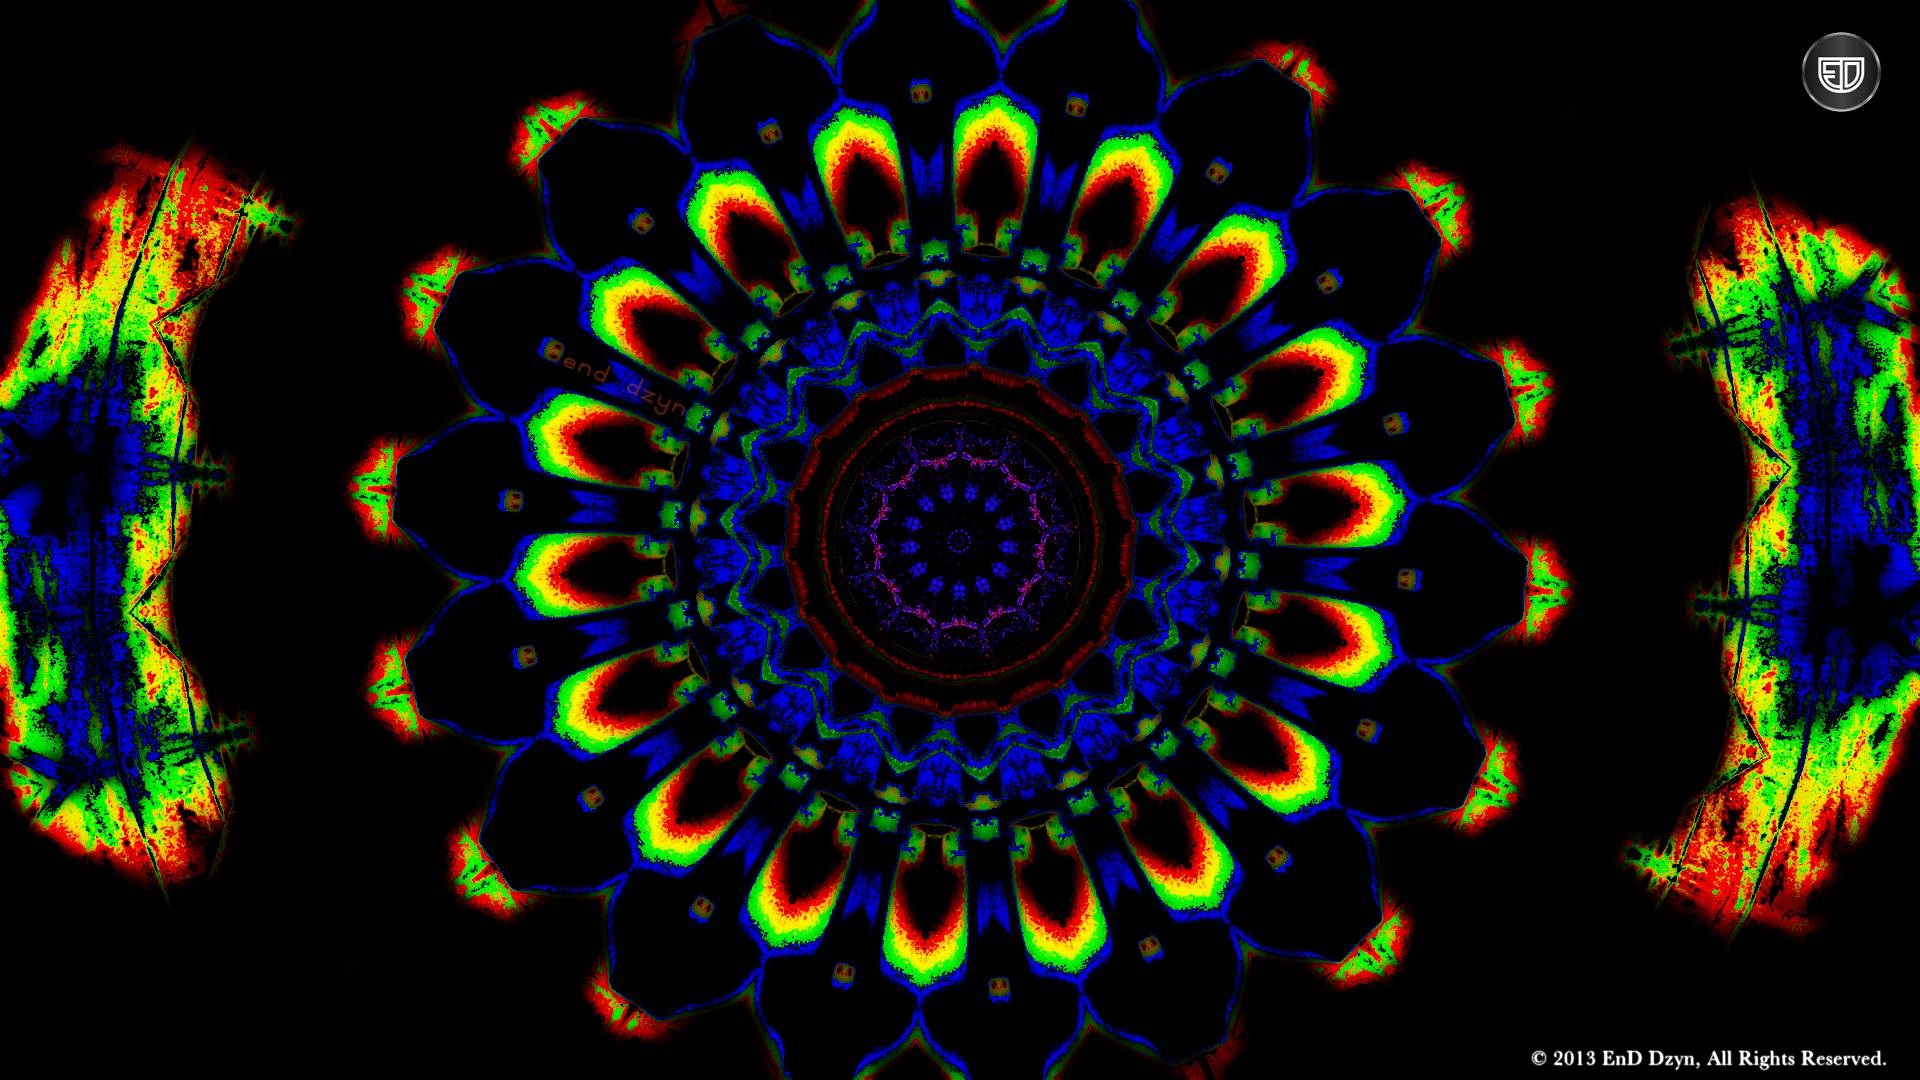 psychedelic hd 1080 wallpapers sexy - photo #12